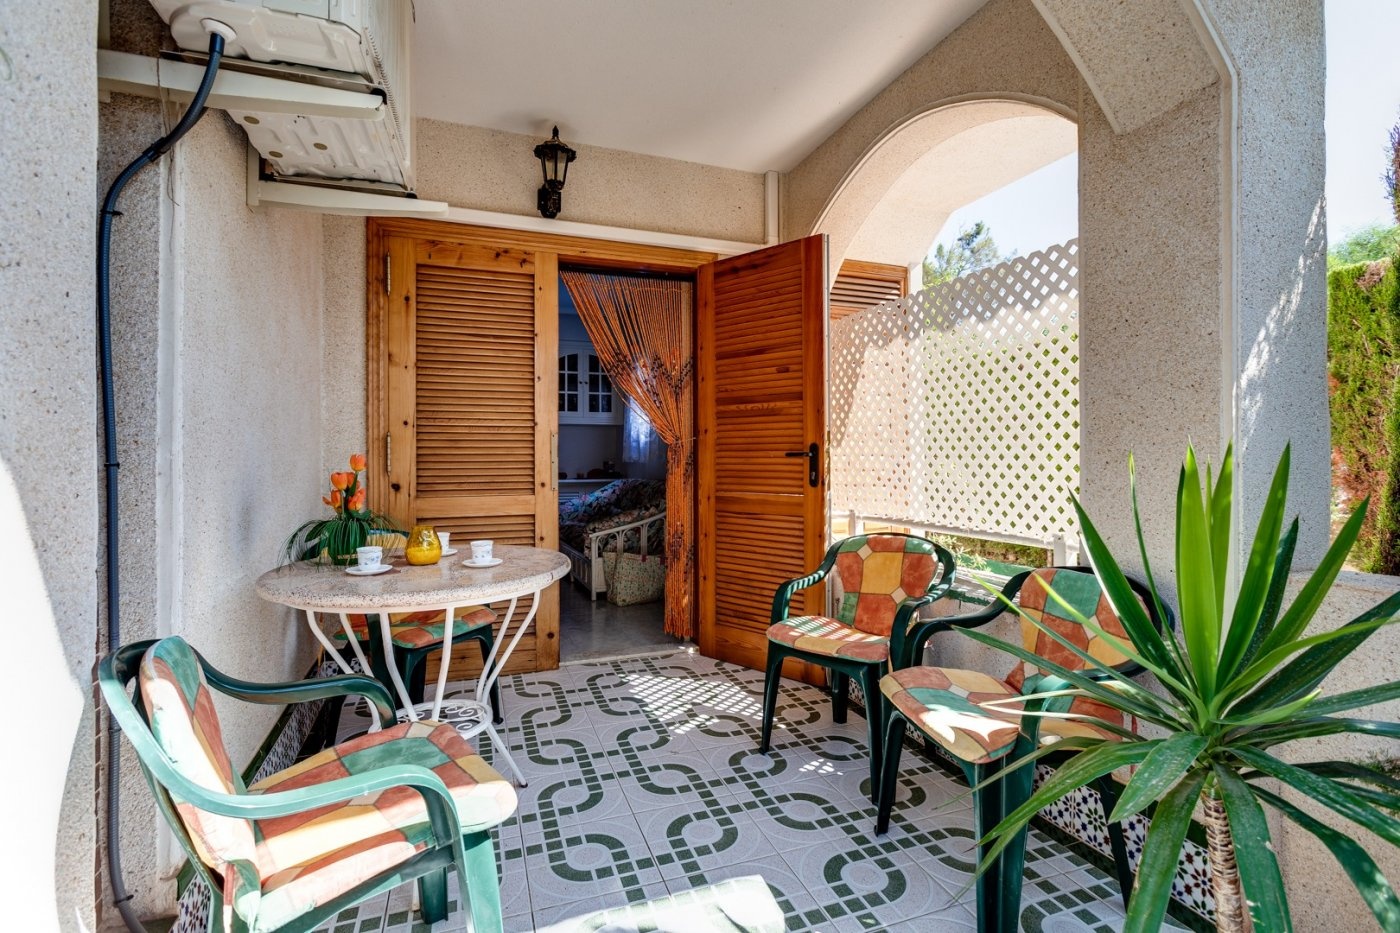 Charming ground floor apartment for sale with a garden in a beautiful complex in Punta Prima near Cala Ferris.